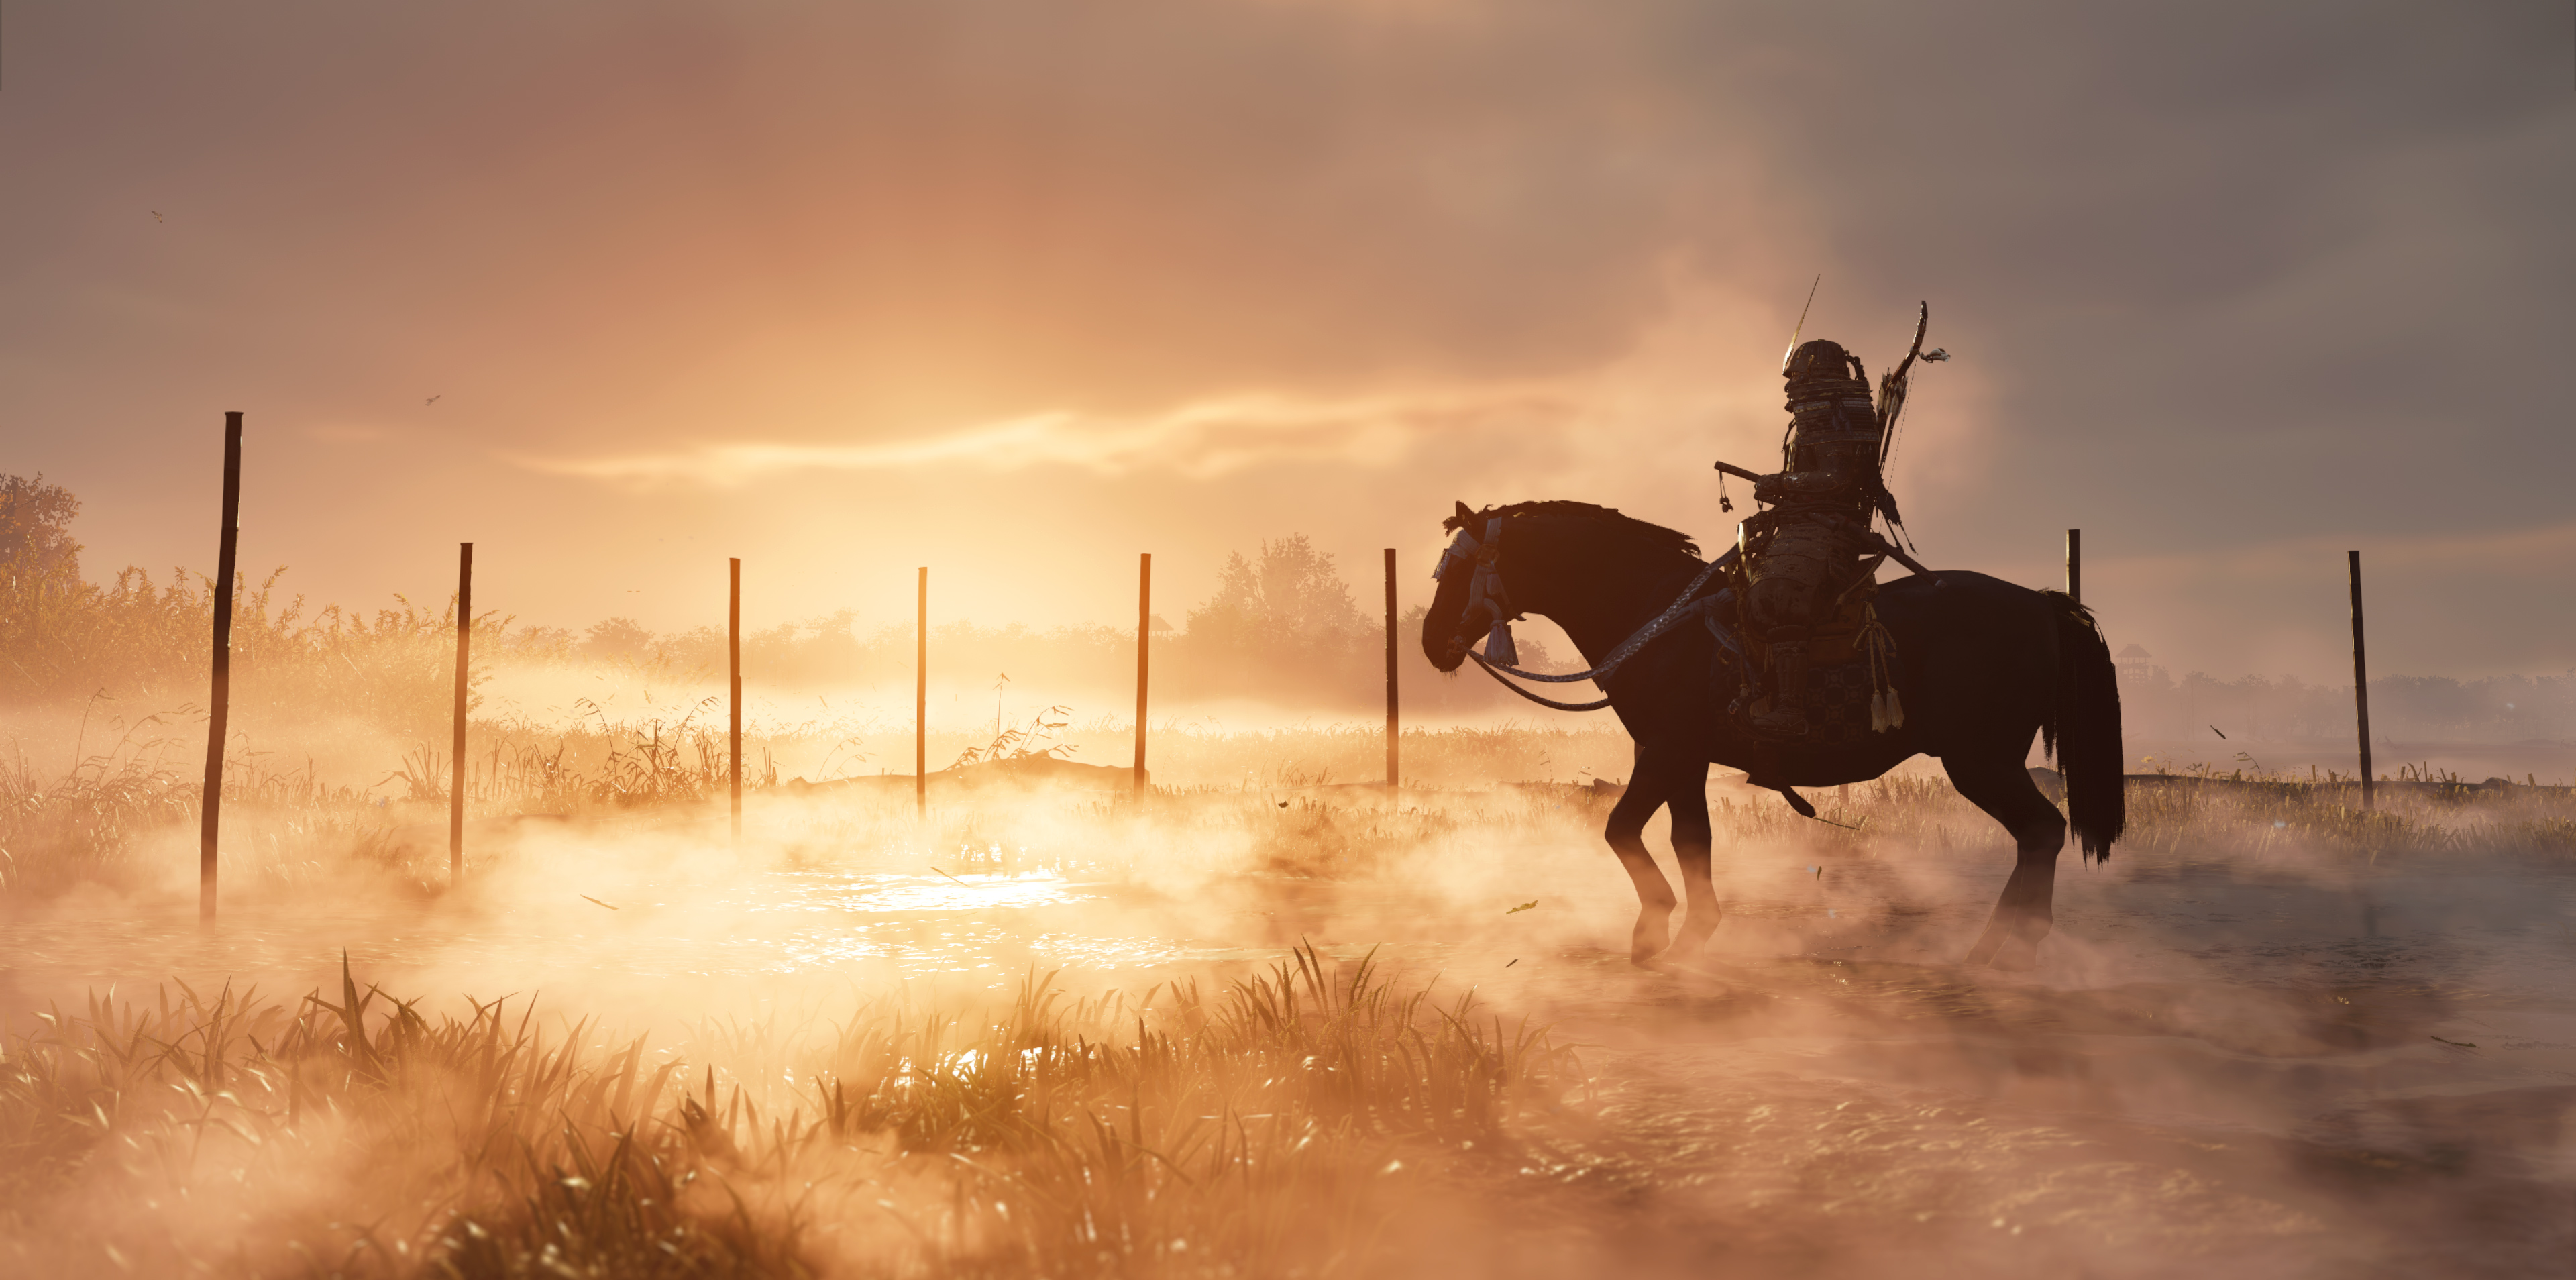 Ghost Of Tsushima Ps5, HD Games, 4k Wallpapers, Images ...